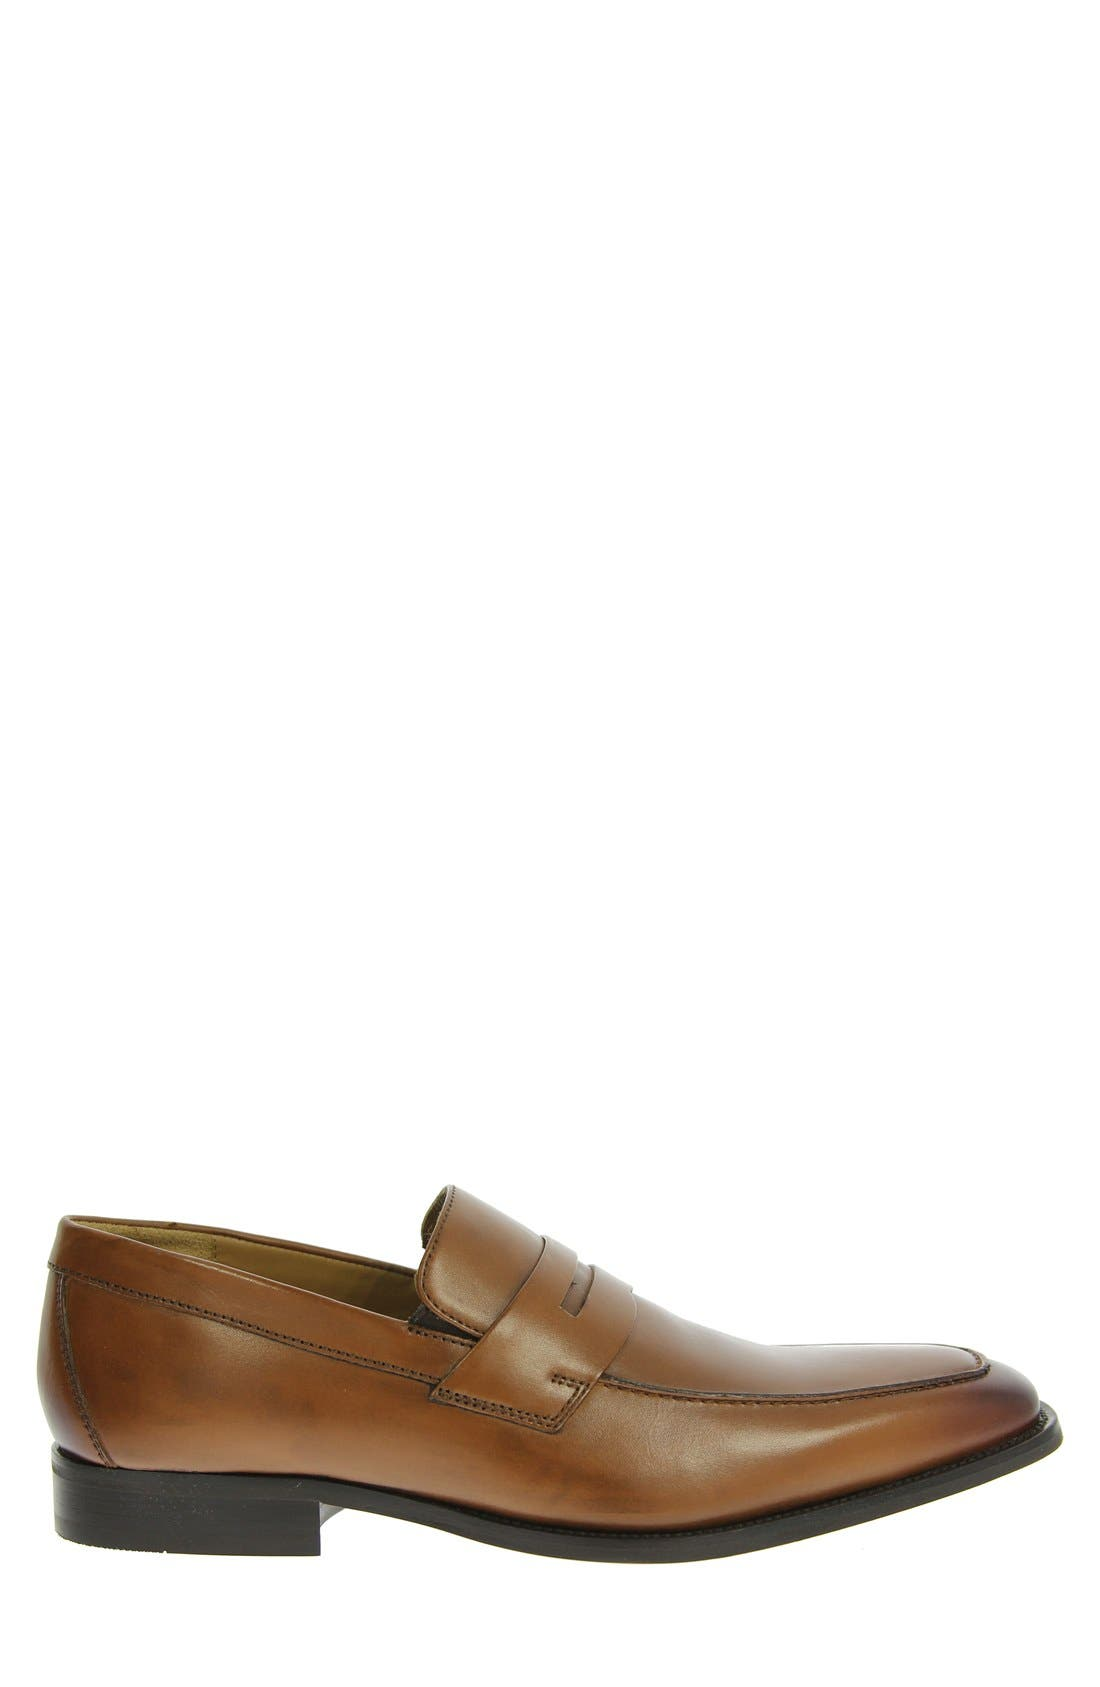 'Sabato' Penny Loafer,                             Alternate thumbnail 12, color,